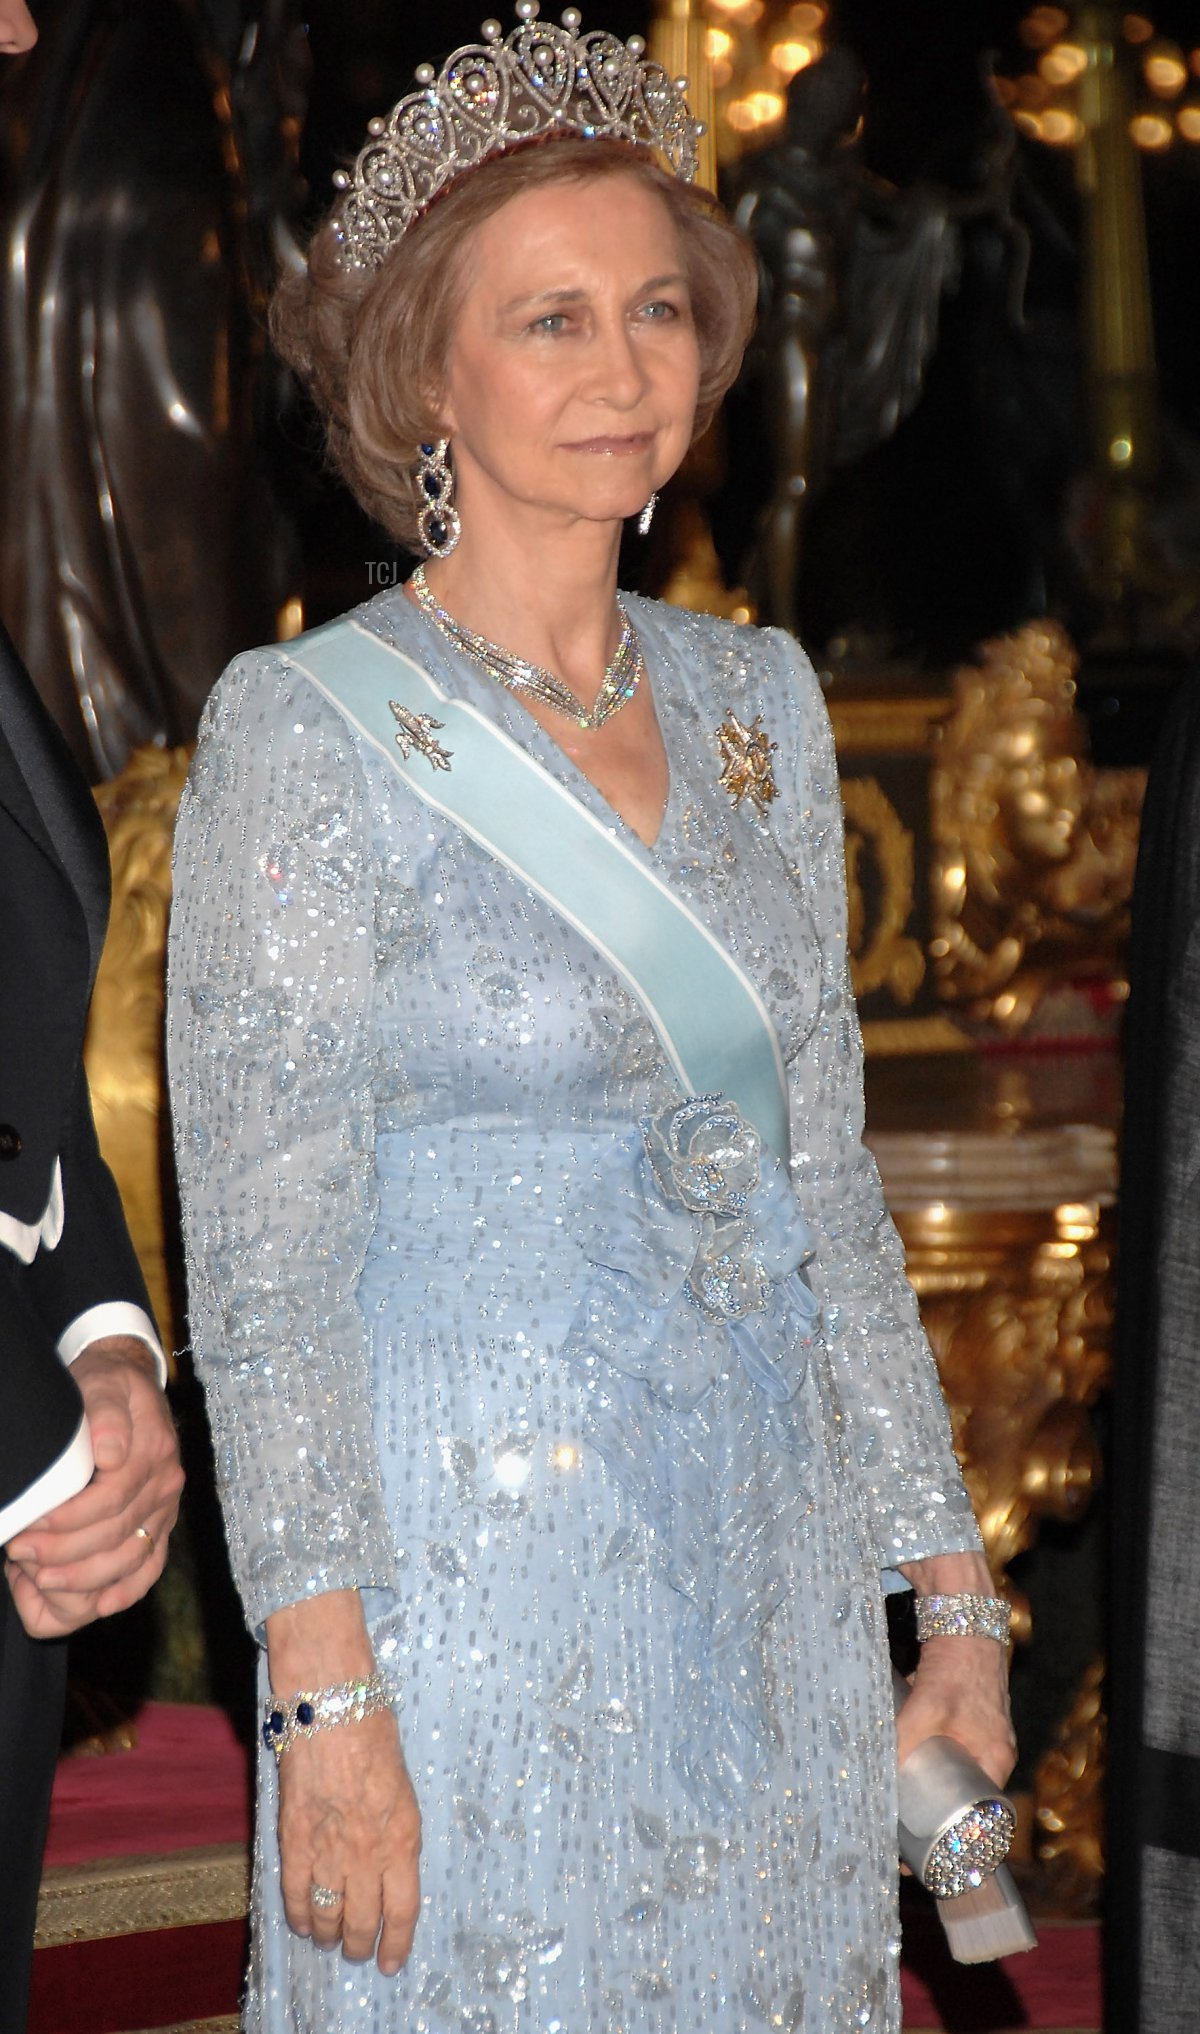 Queen Sofia of Spain receives Saudi King Abdullah Bin Abdul Aziz Al Saud for a Gala dinner on June 18, 2007 at Royal Palace in Madrid, Spain